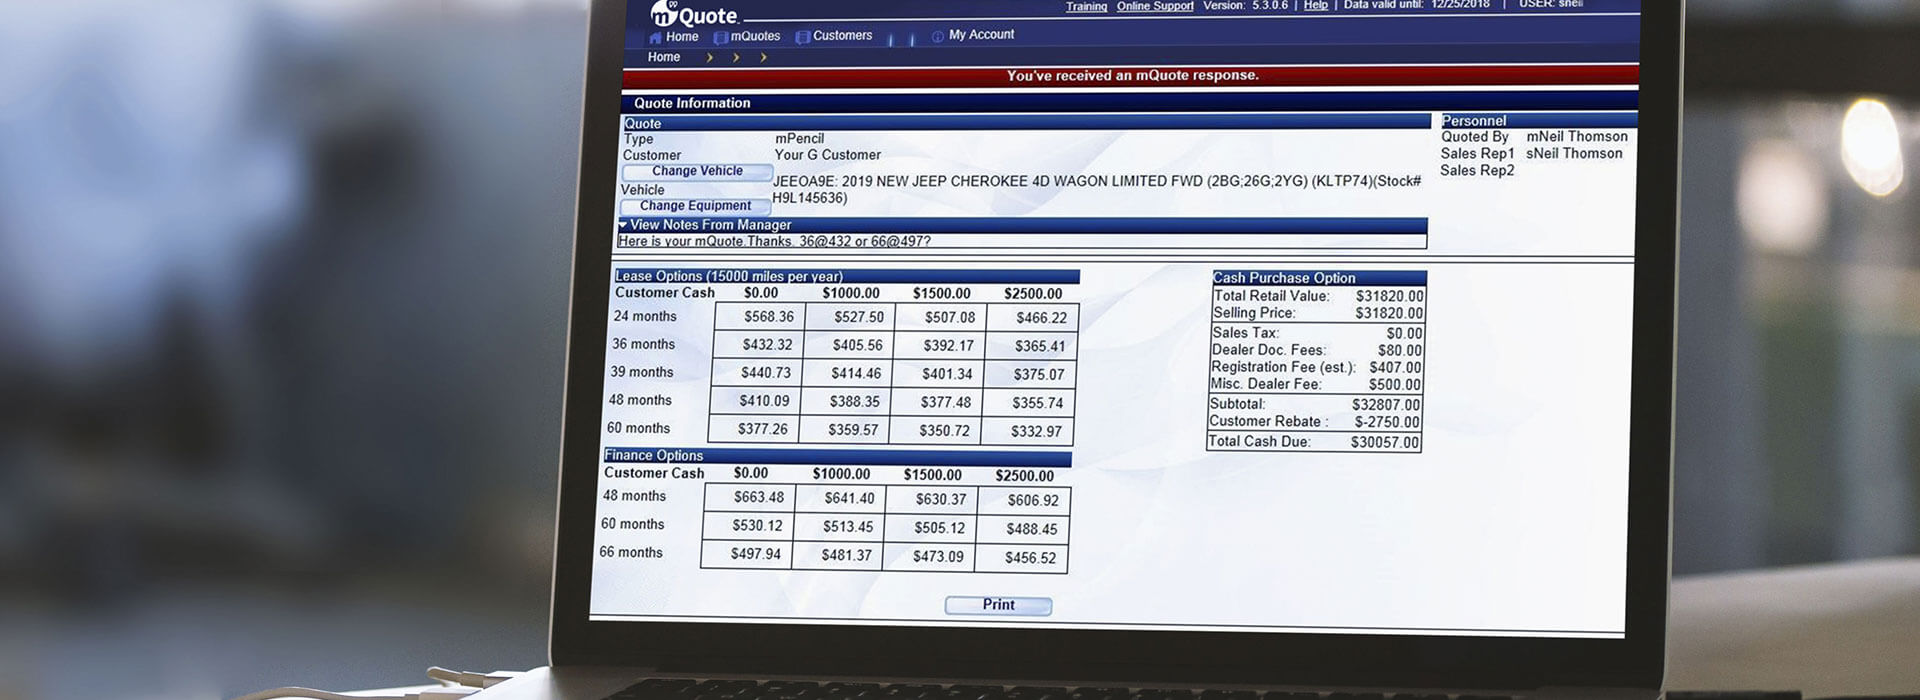 mQuote's Database computer screen